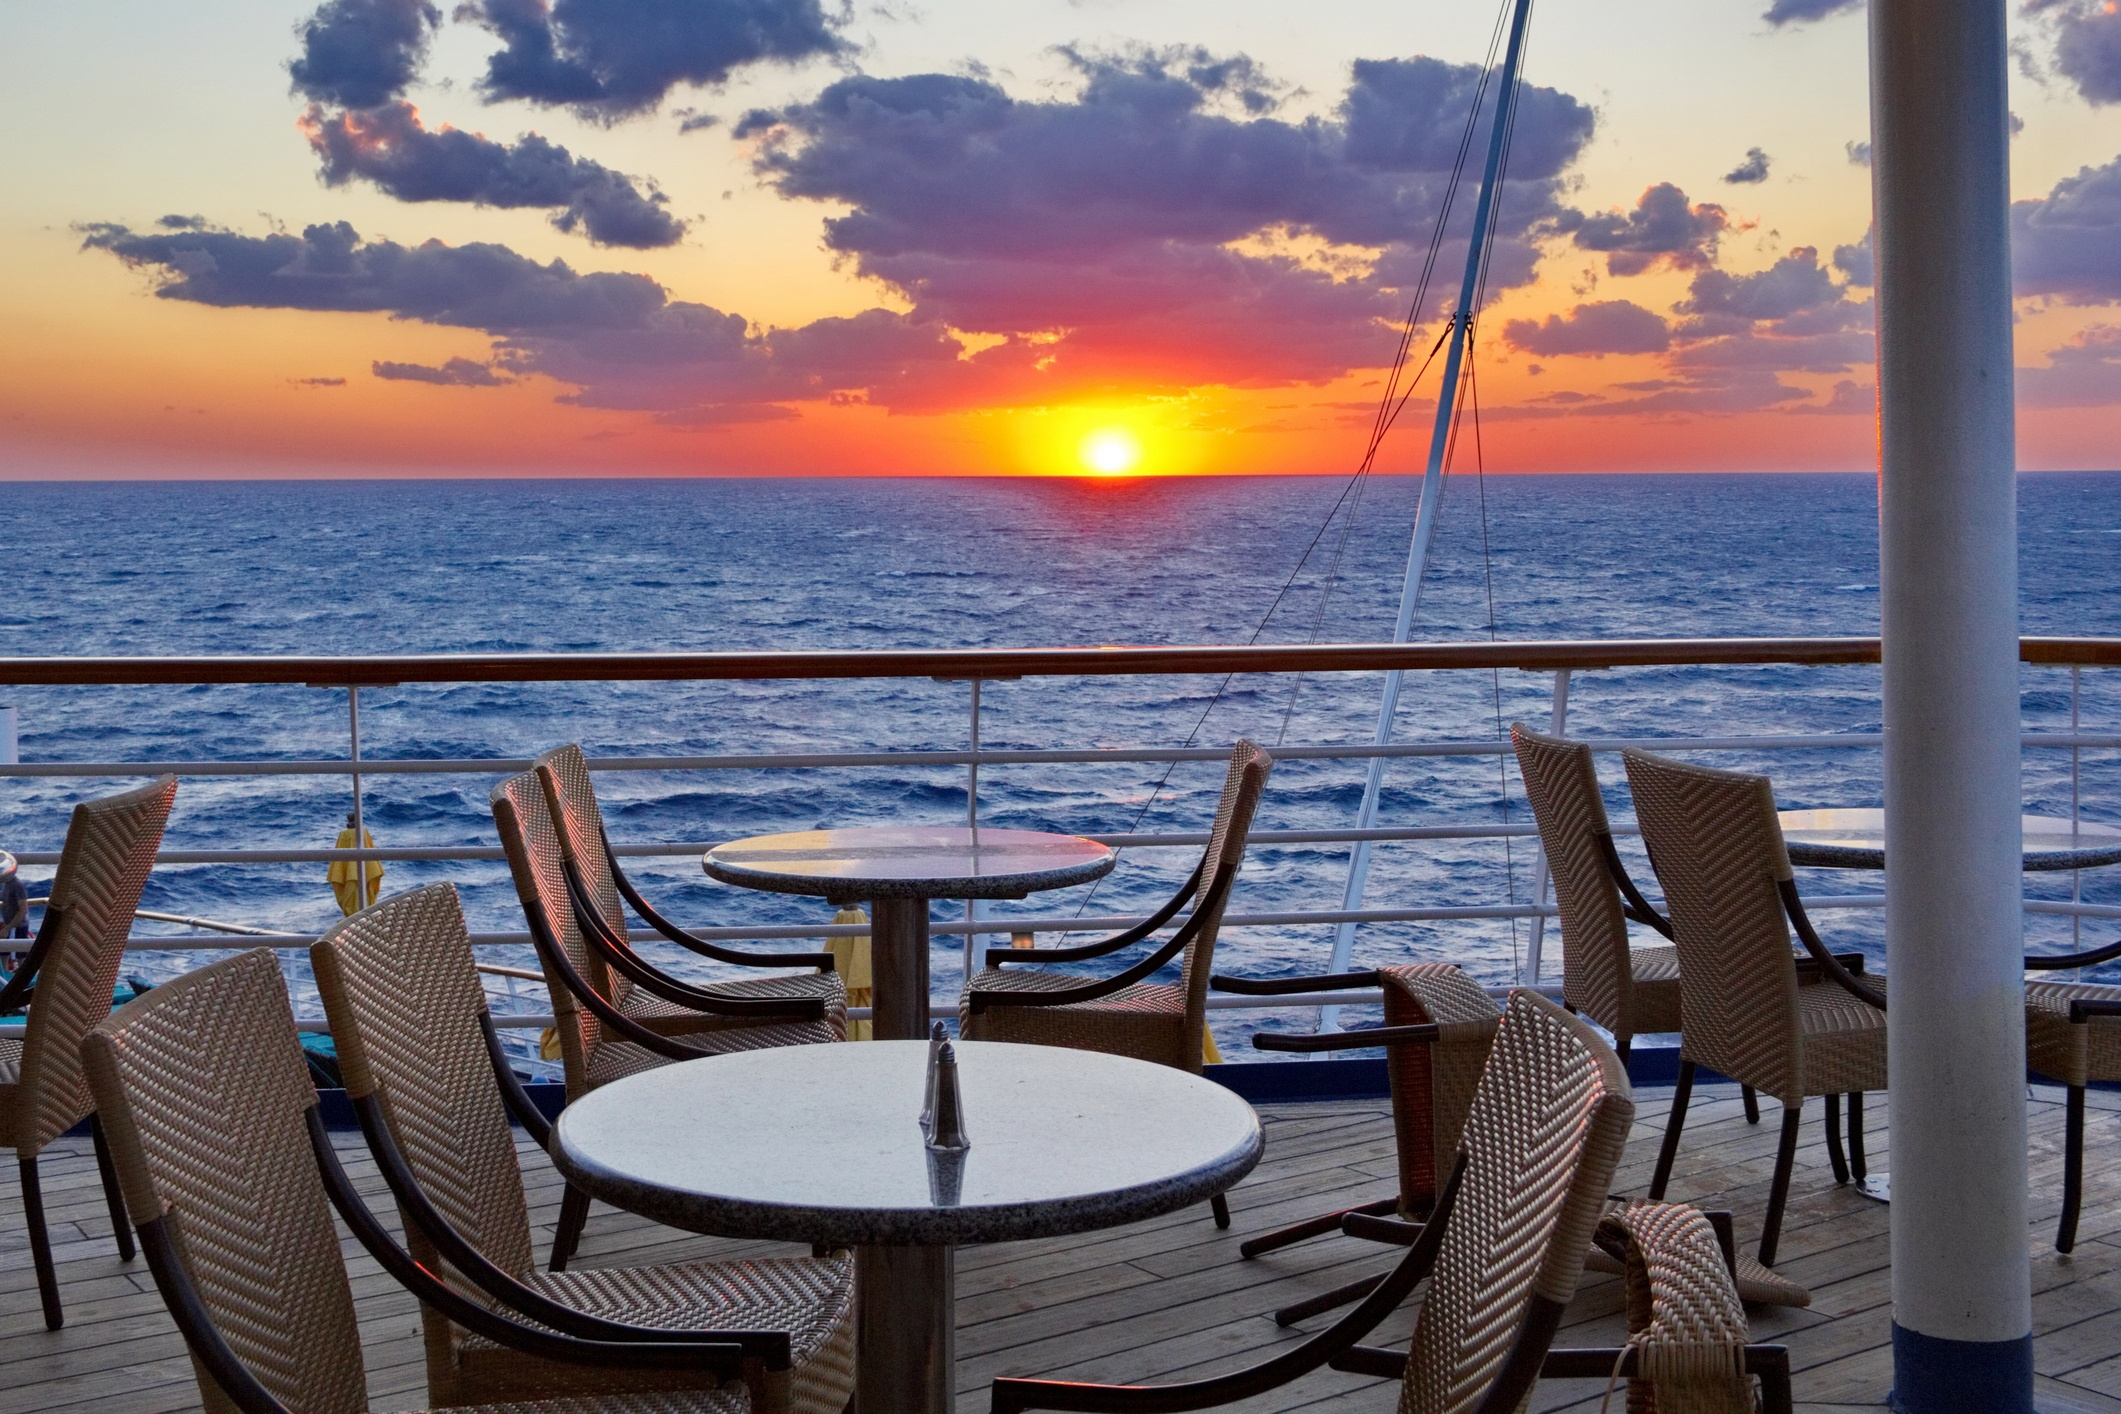 Orange Glow Sunset from the Cruise Ship Dining Deck